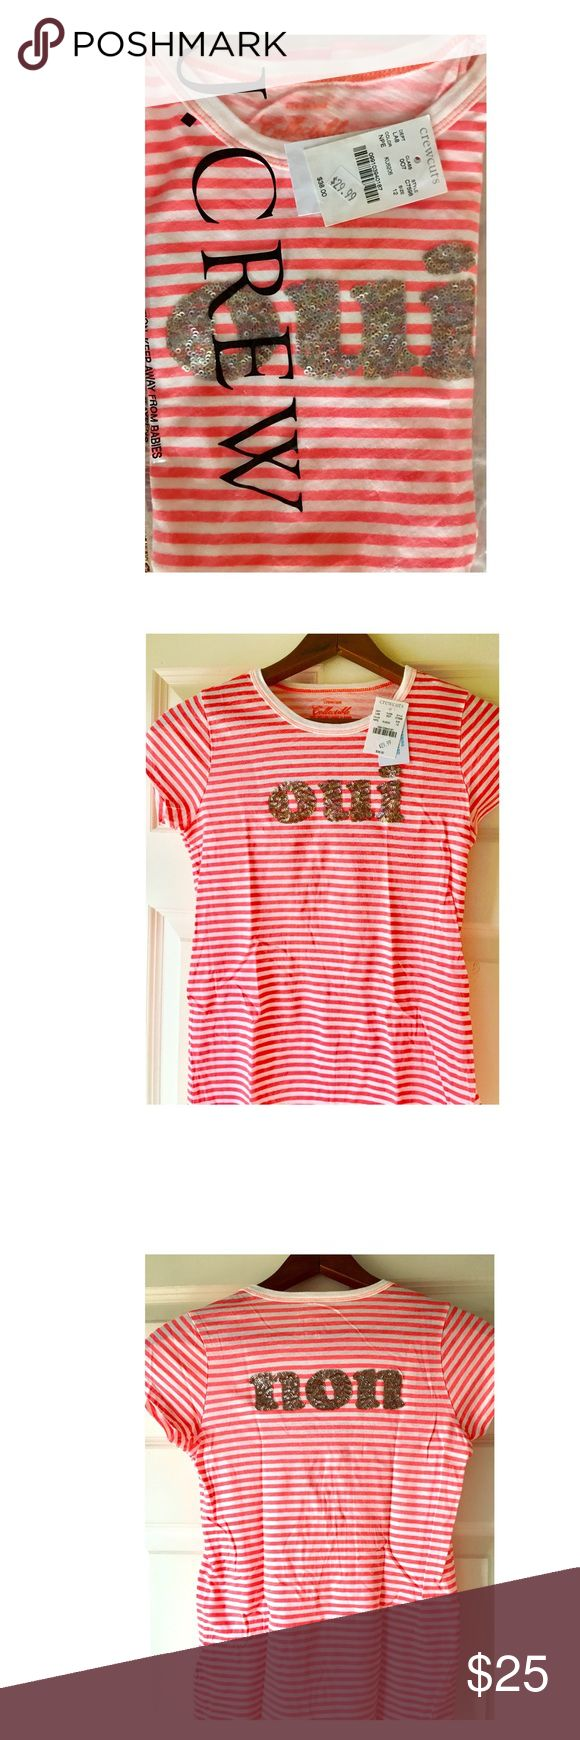 NEW Girls J.CREW 2side crystal T SOLDOUT fullprice Yes/No - Collectible T, sold out immediately @ full price in just one day!! Oui/Non! Très adorable for the fashionable Francophile, or just a fun way to let your voice be heard! The letters are hand-embellished with paillettes so there's no way this girl won't be heard! Super fun, bold stripes - ultra comfy soft cotton, too! J. Crew Shirts & Tops Tees - Short Sleeve